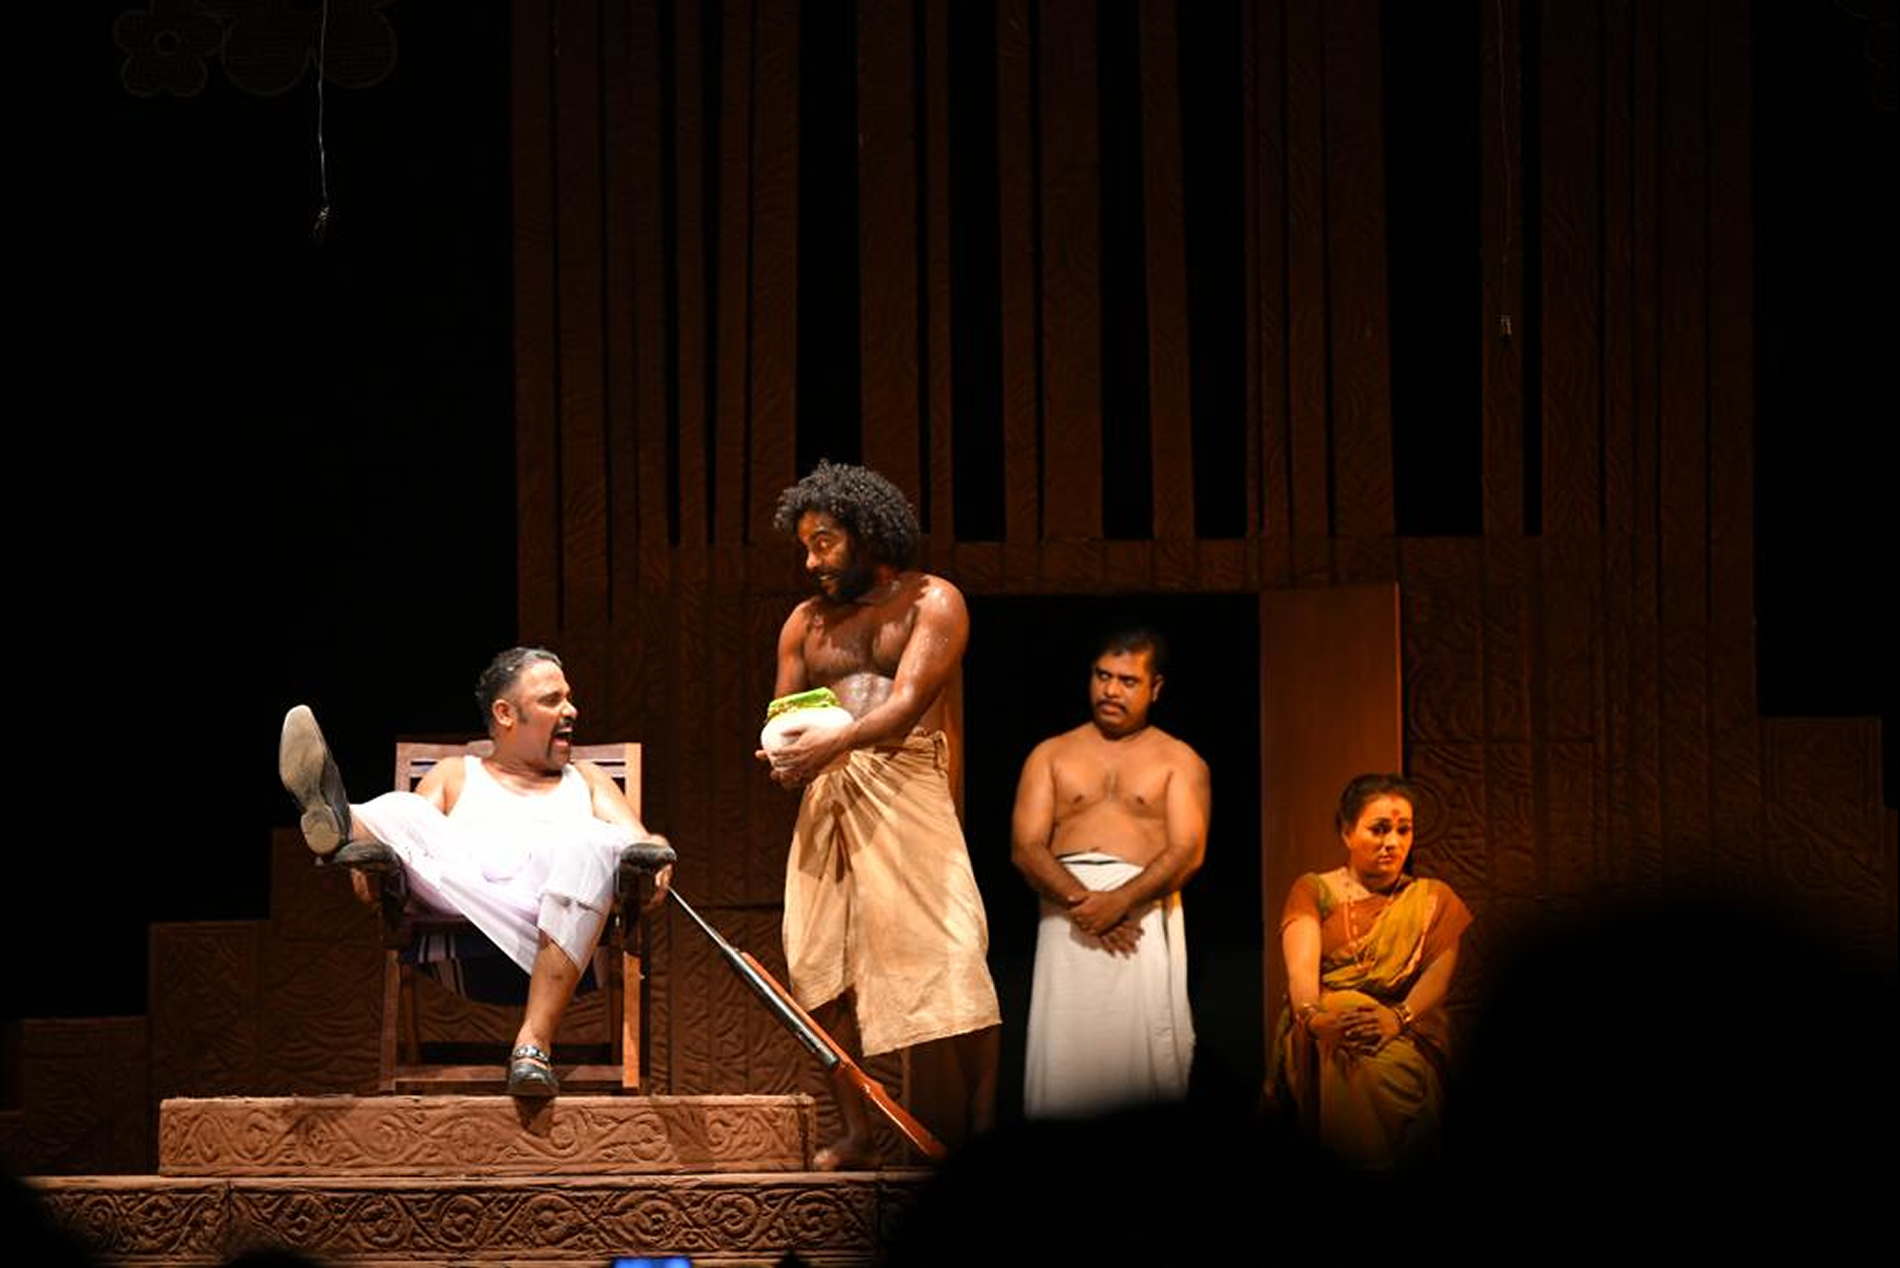 Controversy over male nudity in Malayalam play staged in theatre festival